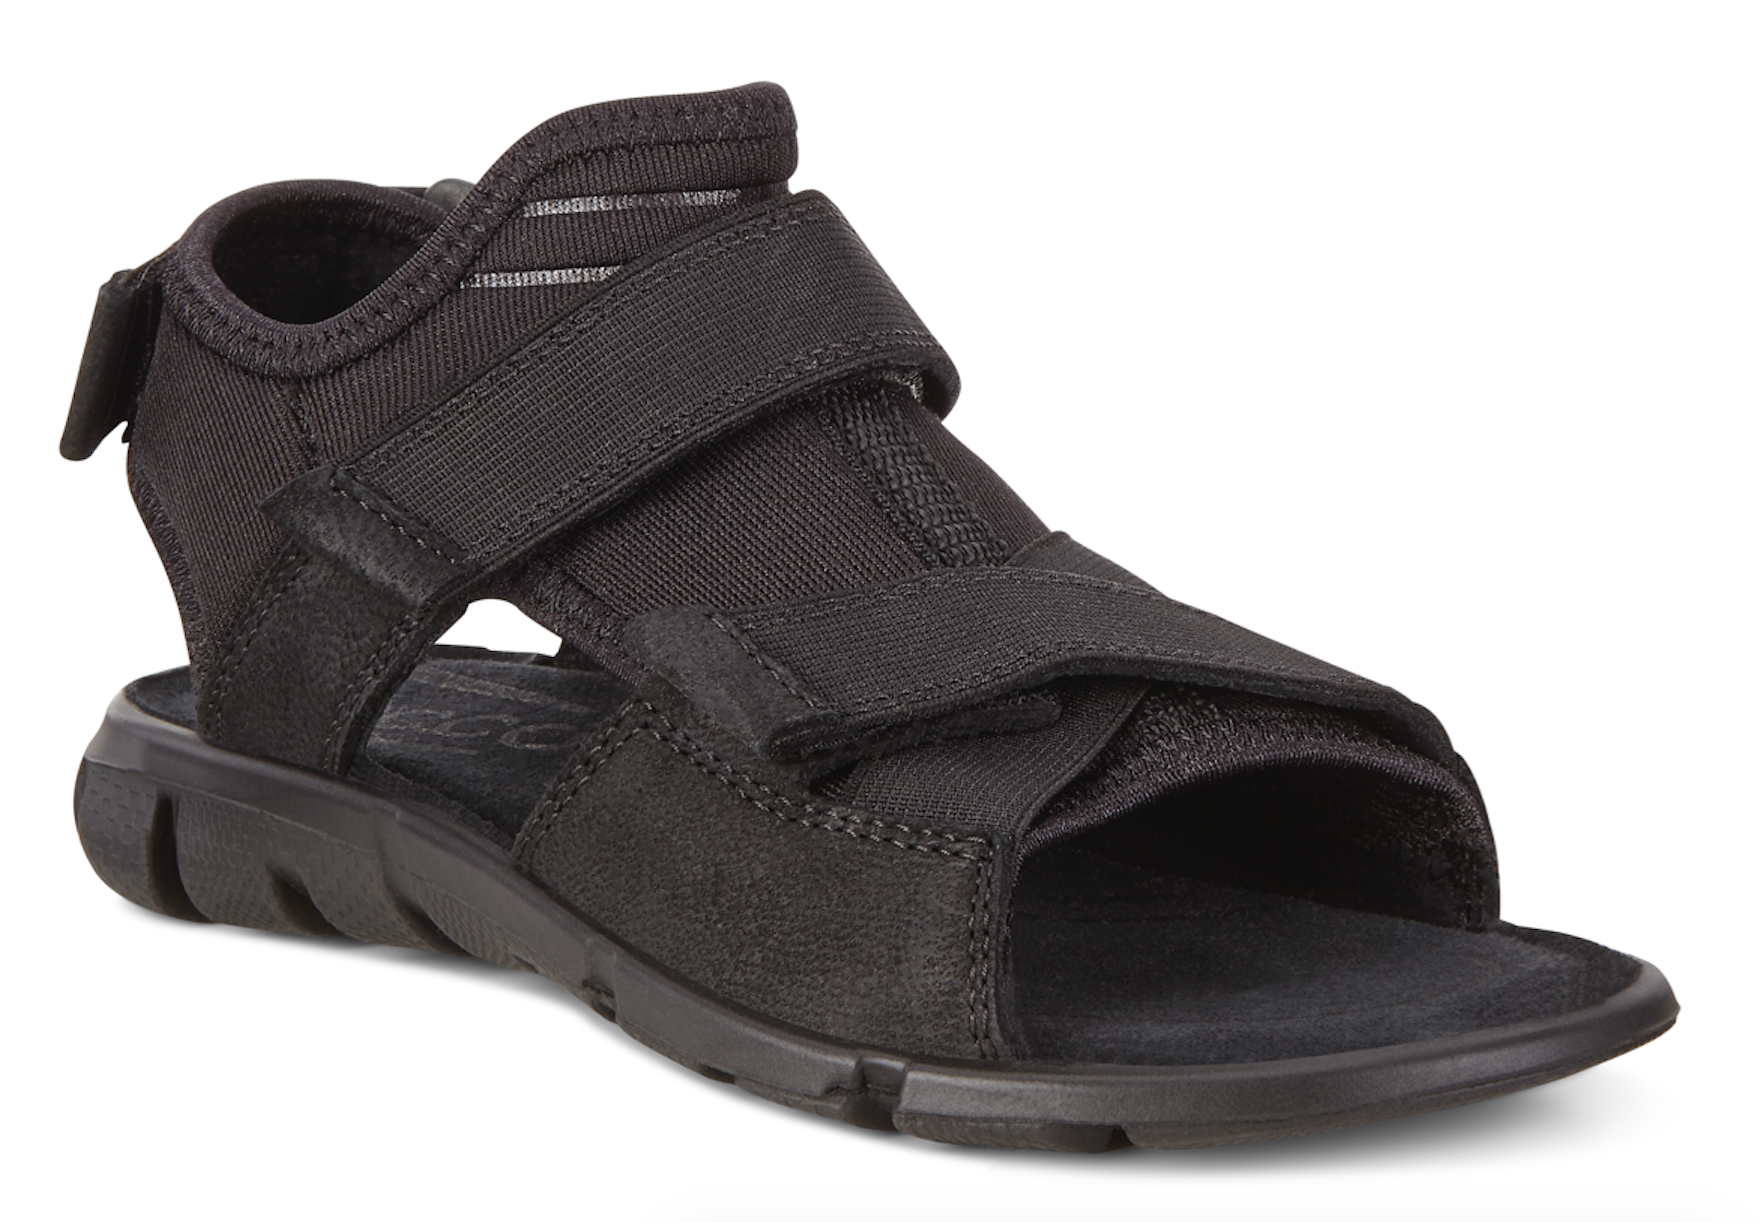 70561251052 STR27 35 Sort Ecco Intrinsic Sandal